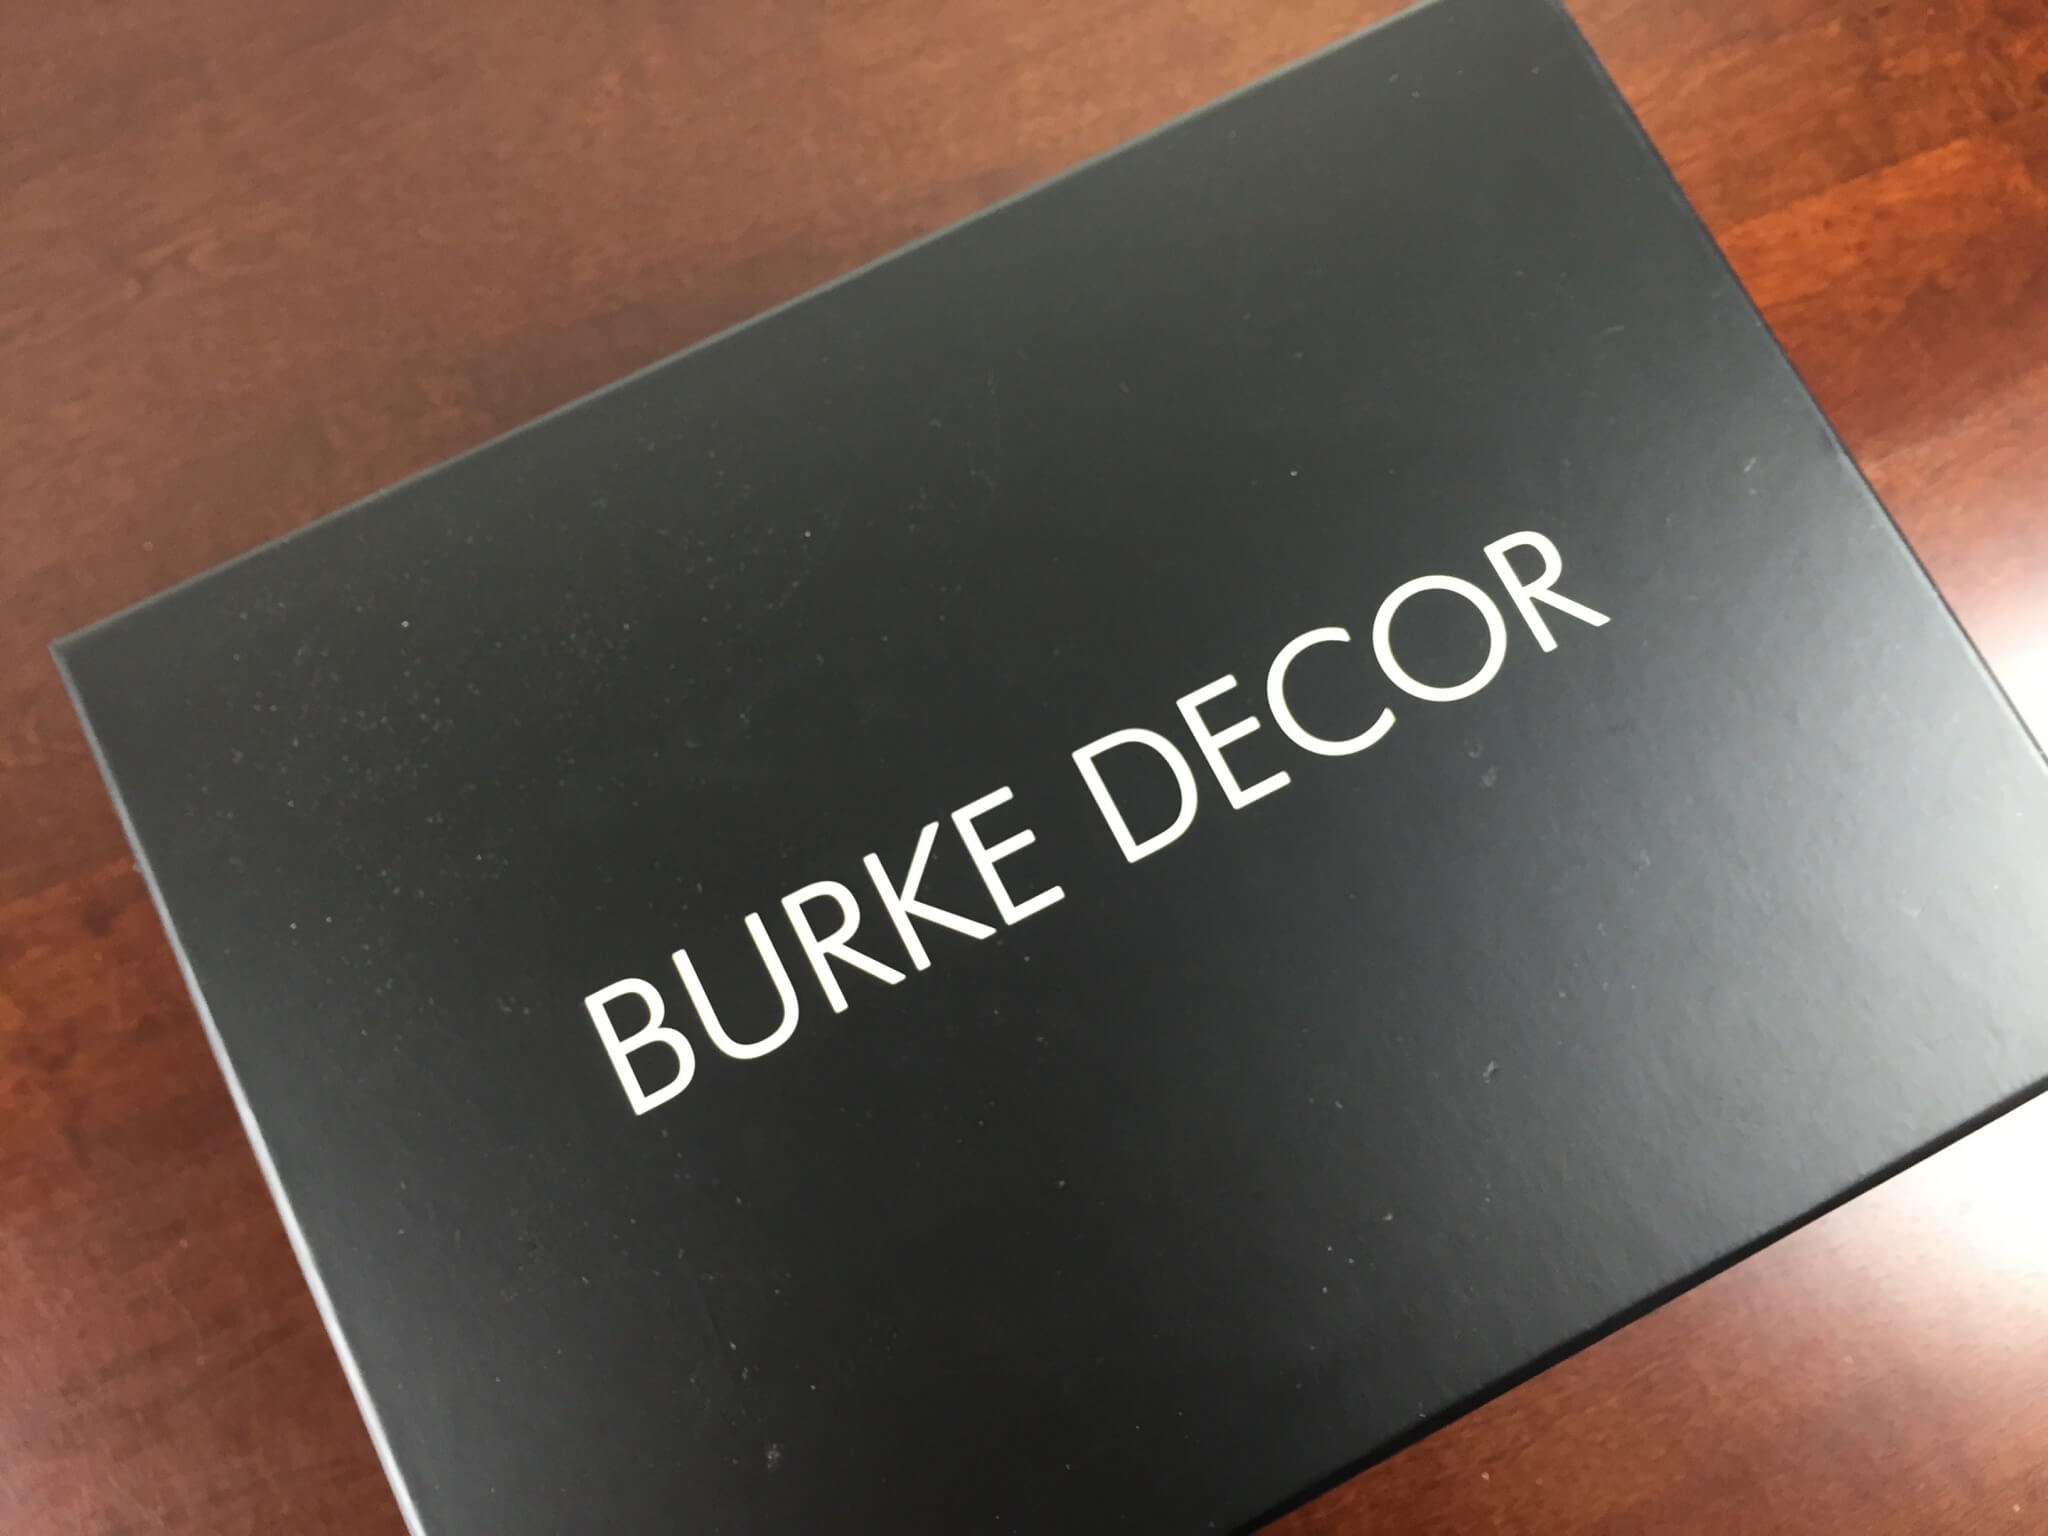 Burke box whole home subscription box review june 2015 for Home subscription box